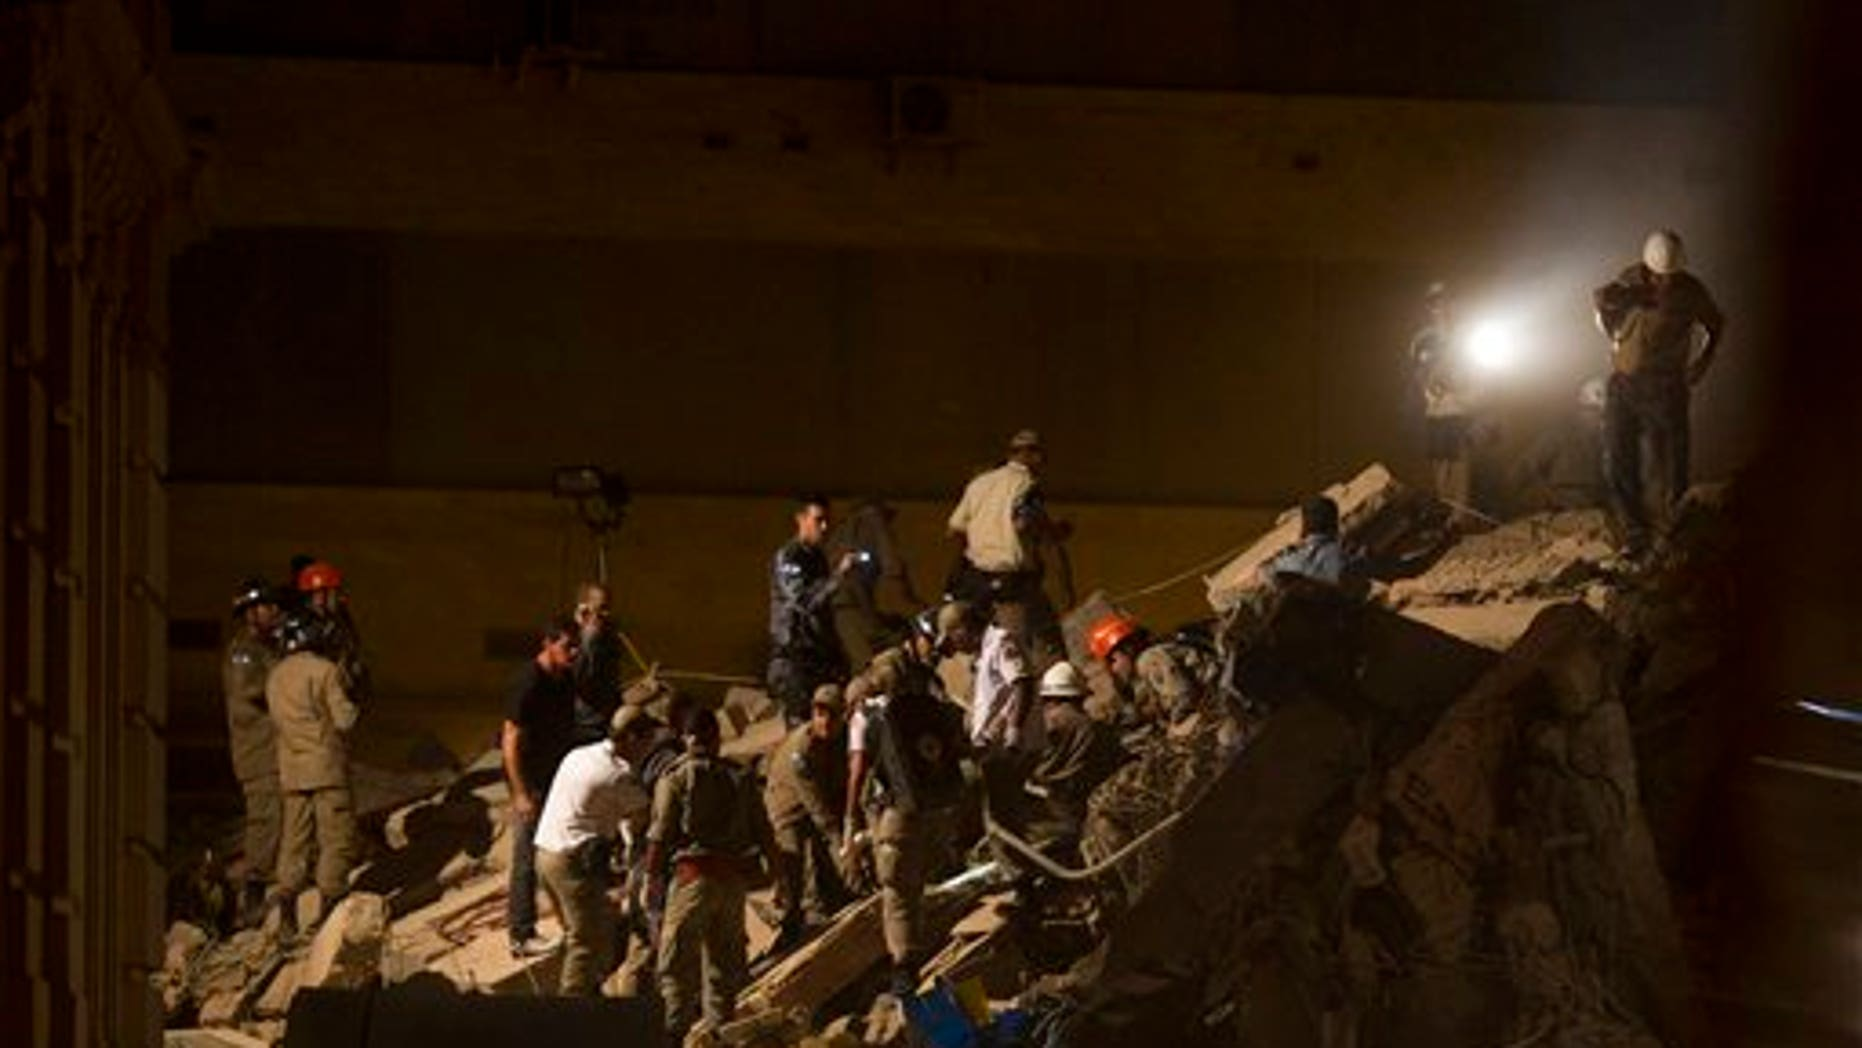 Jan. 25: Rescue workers search for victims after a building collapsed in Rio de Janeiro, Brazil.